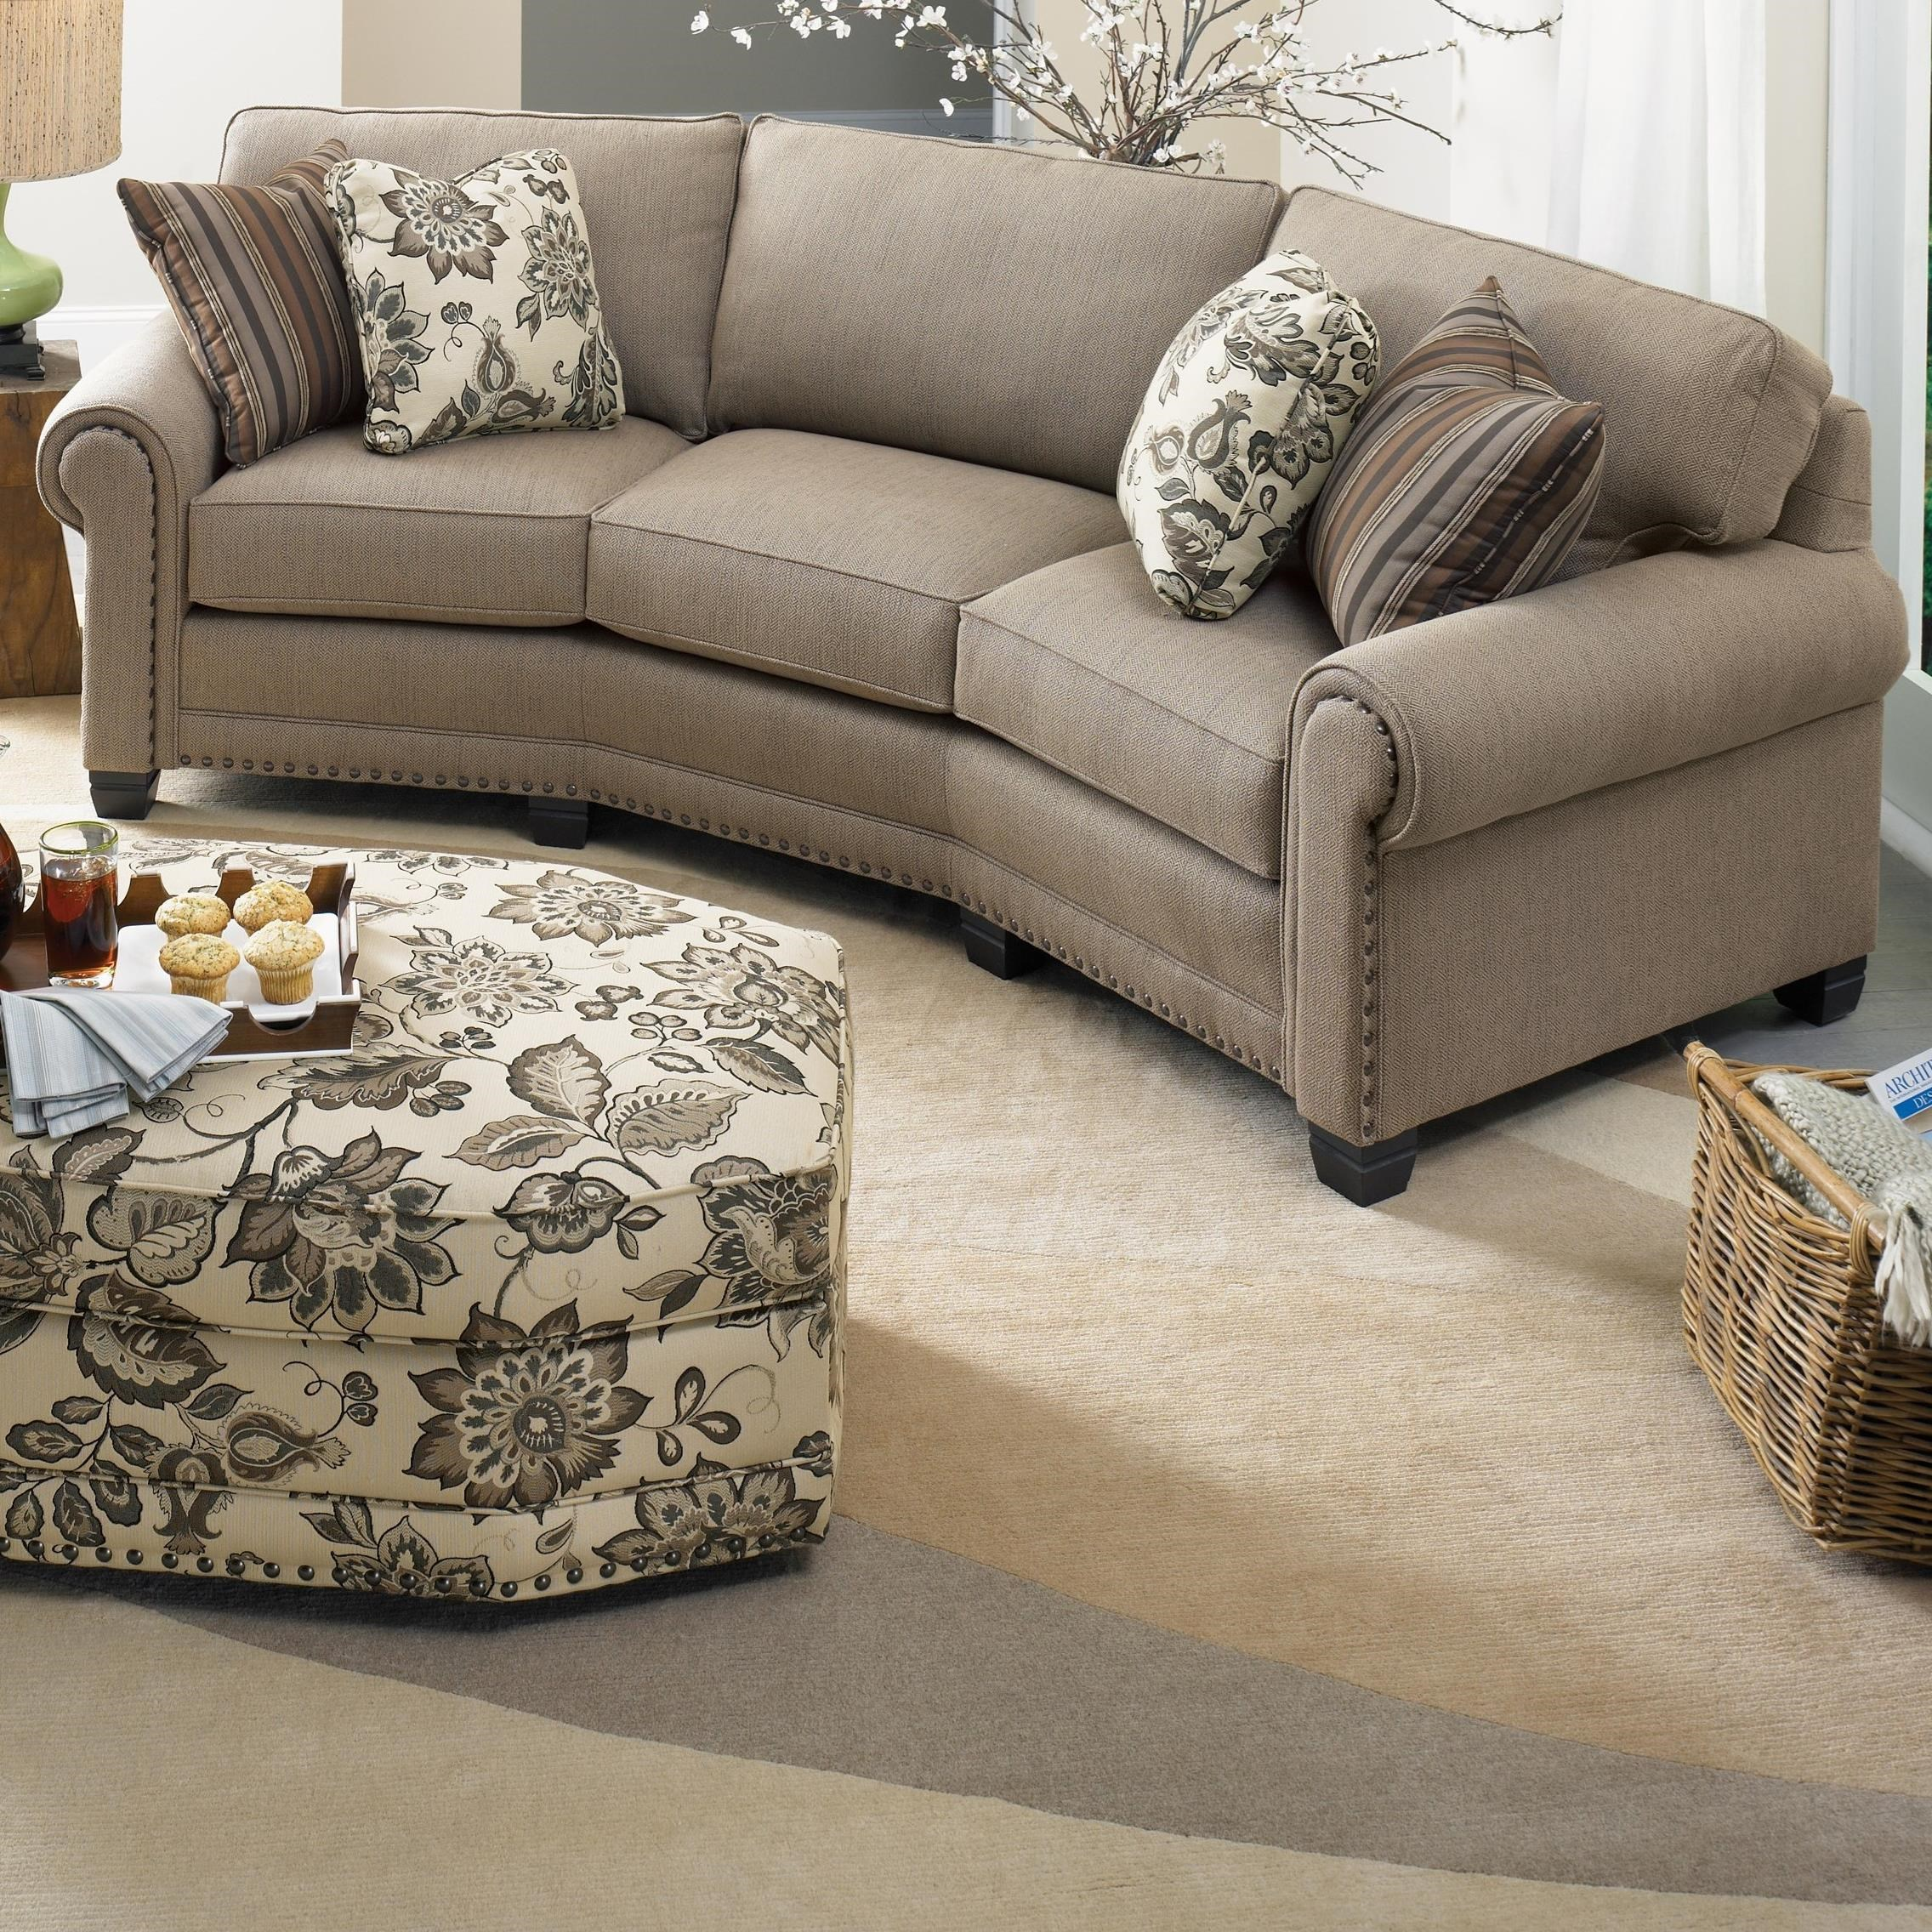 Smith Brothers 393 393 12 Traditional Conversation Sofa